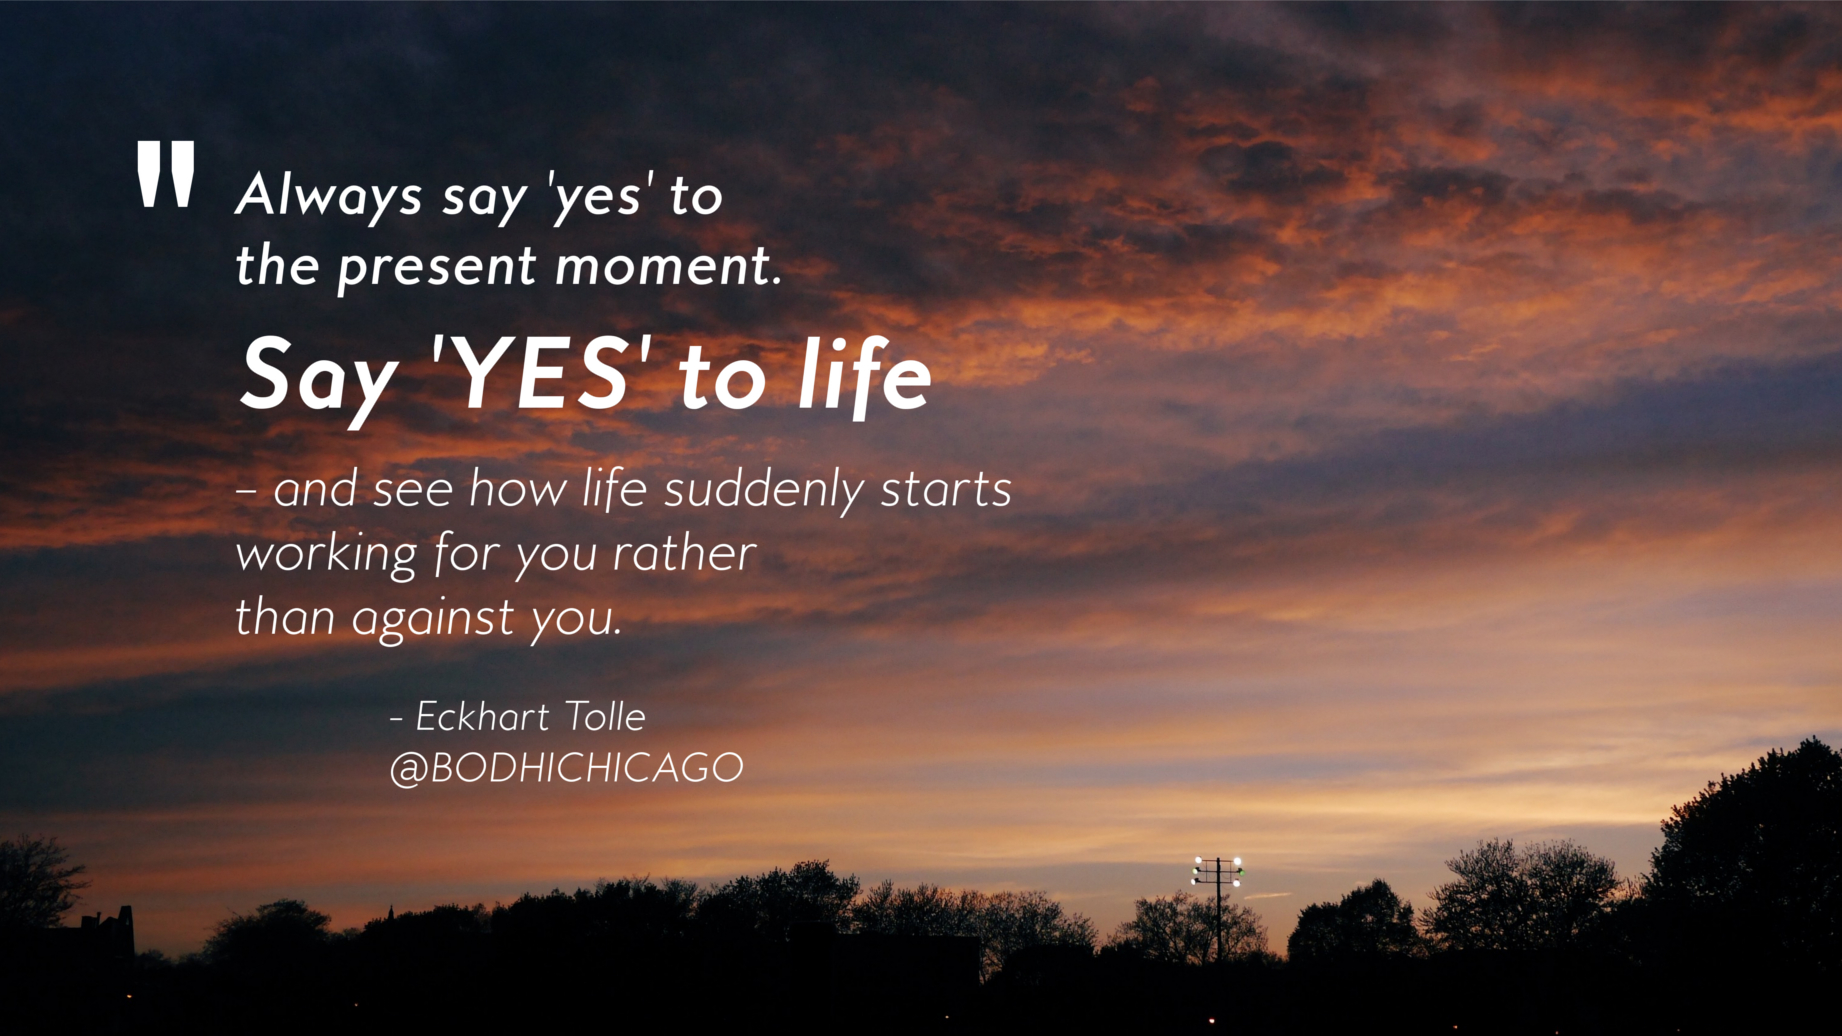 Wednesday Wisdom Quote Eckhart Tolle On Saying Yes To